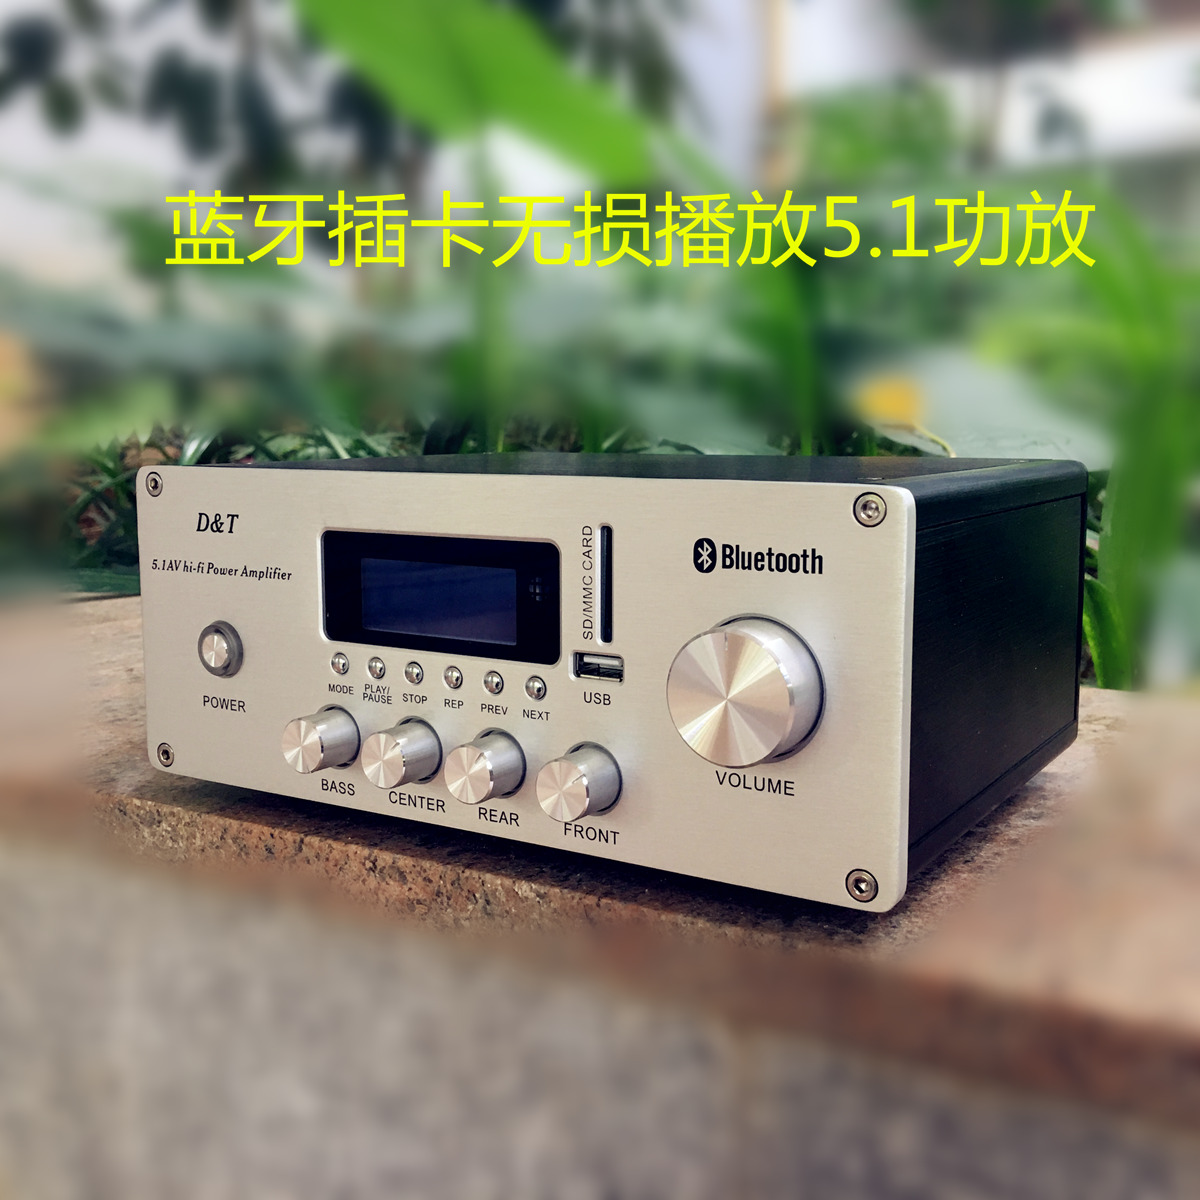 5.1 channel Bluetooth USB channel card to play lossless music 6 channel home audio and video amplifier